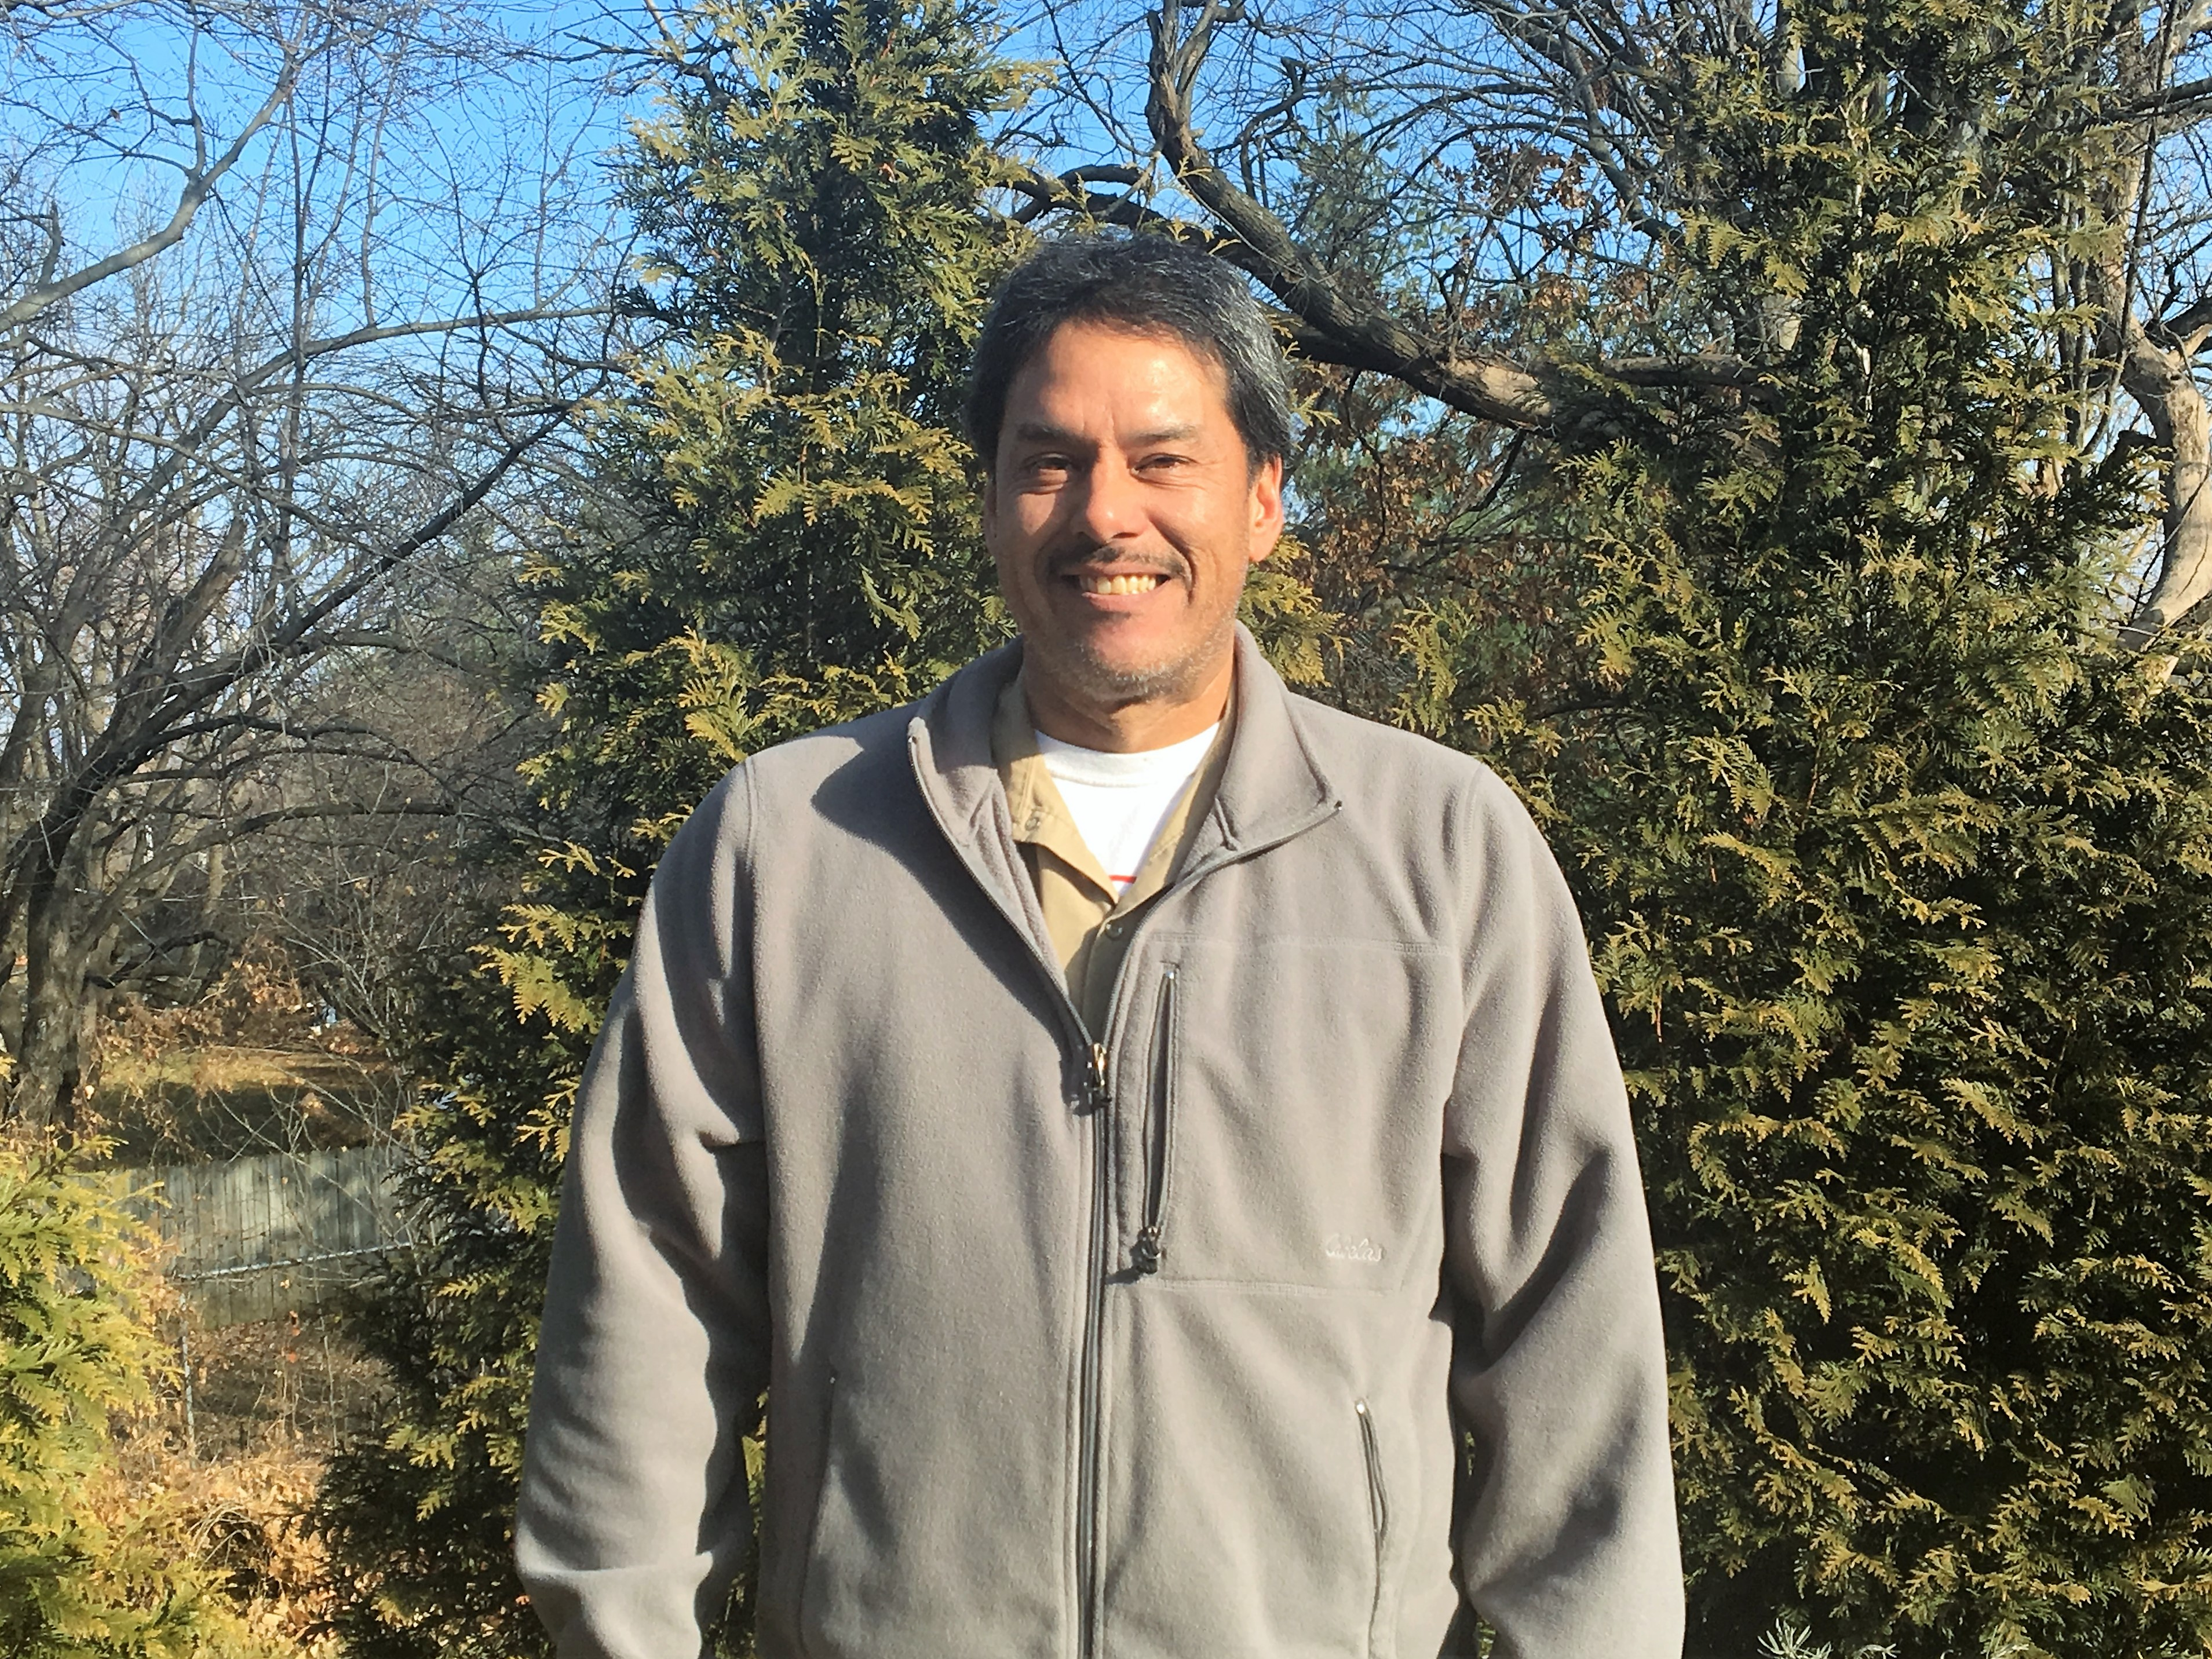 Employee Spotlight: Meet Billy Dupras, Account Manager, 3 months